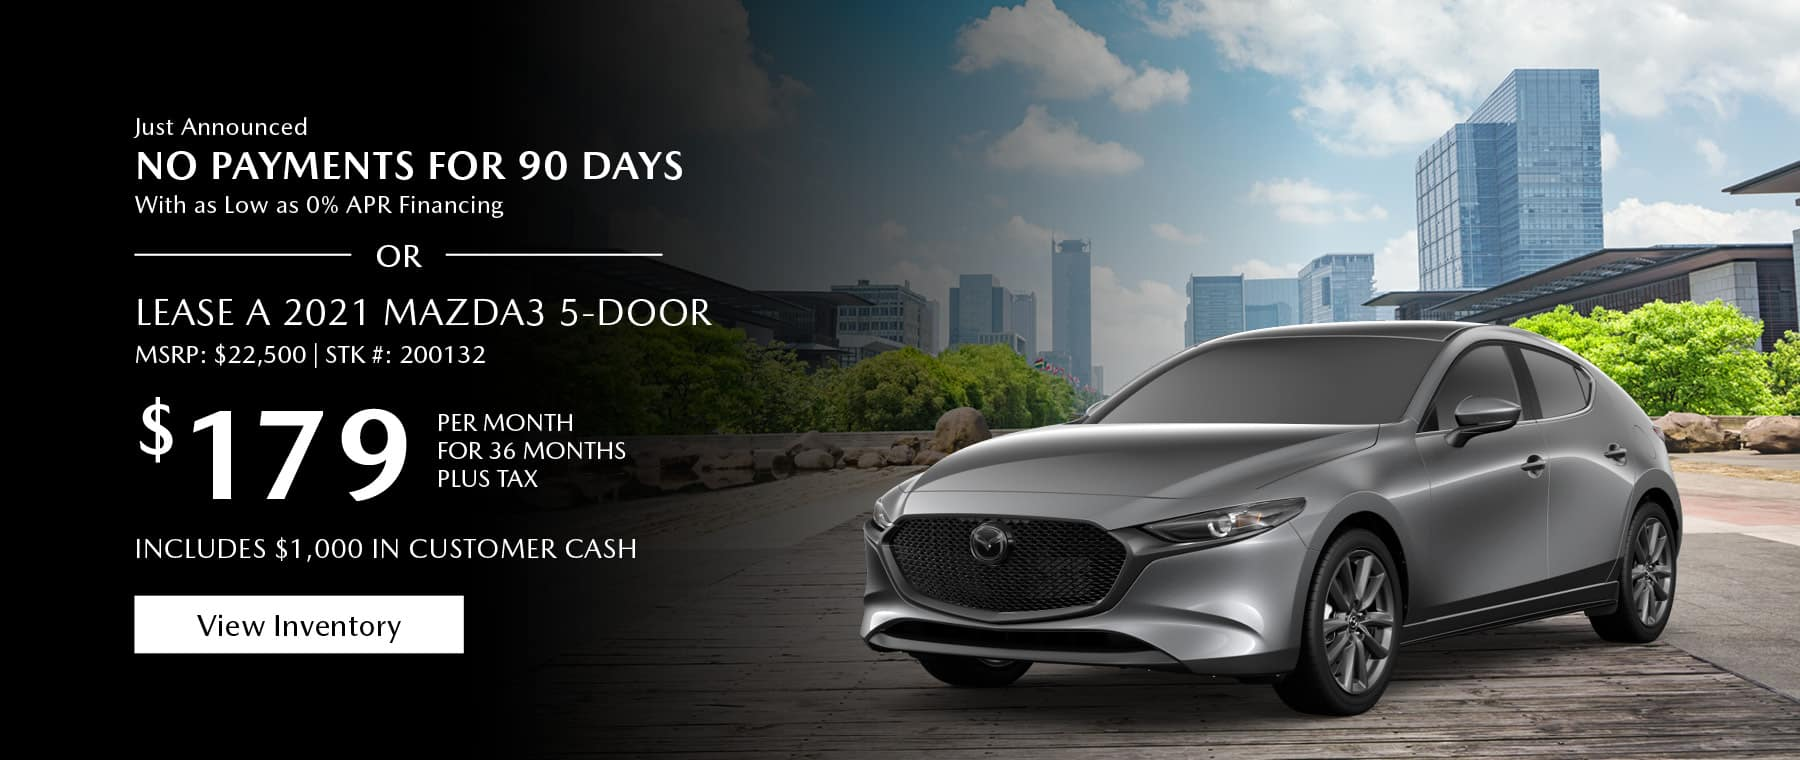 Just Announced, No payments for 90 days with as low as %0 APR financing, or lease the 2021 Mazda3 hatchback for $179 per month, plus tax for 36 months. Includes $1,000 in customer cash. Click or tap here to view our inventory.